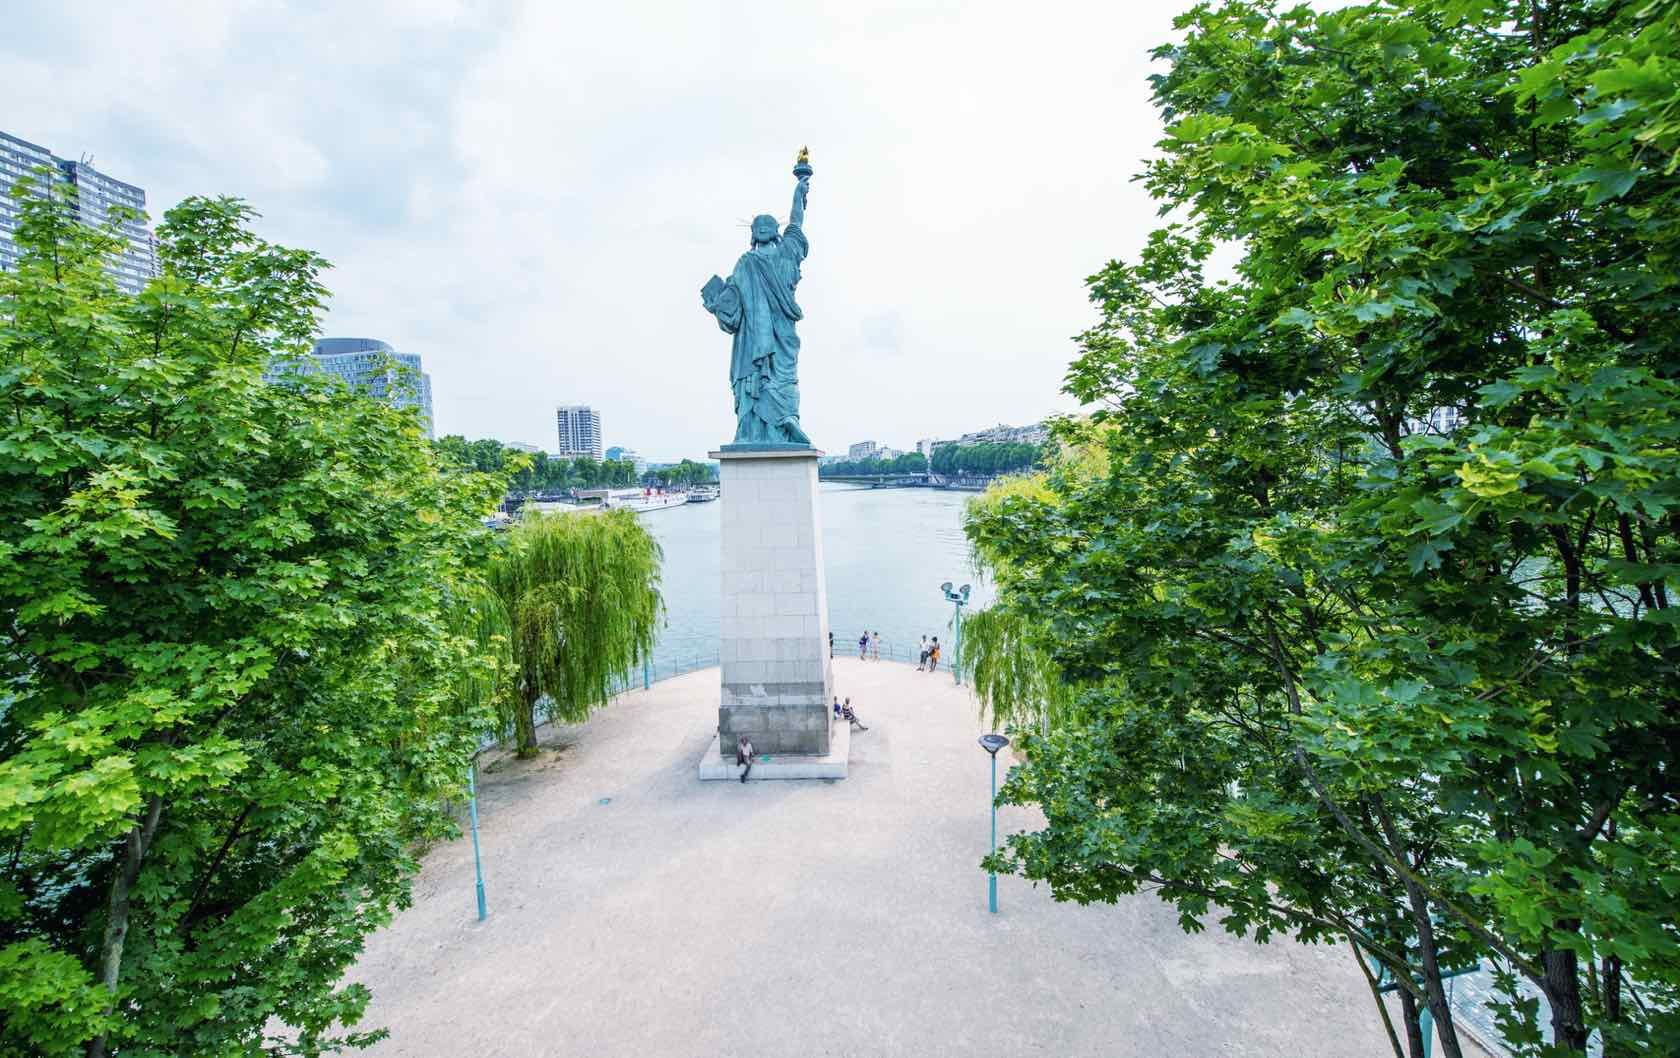 Offbeat Things to See in Paris Statue of Liberty